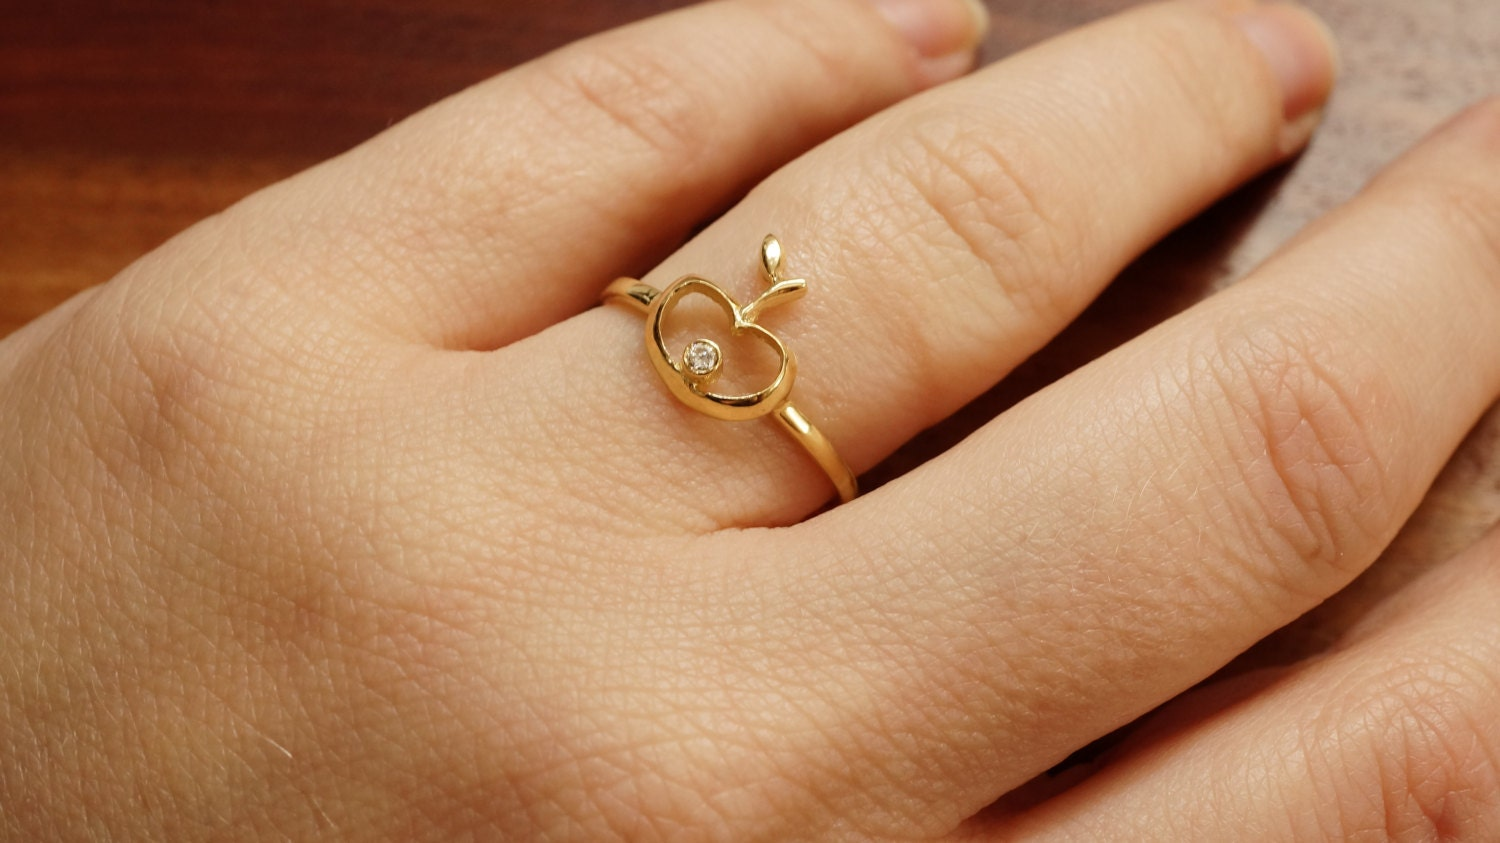 Minimalist ring-Unique Gold Diamond Ring-14k Yellow Gold